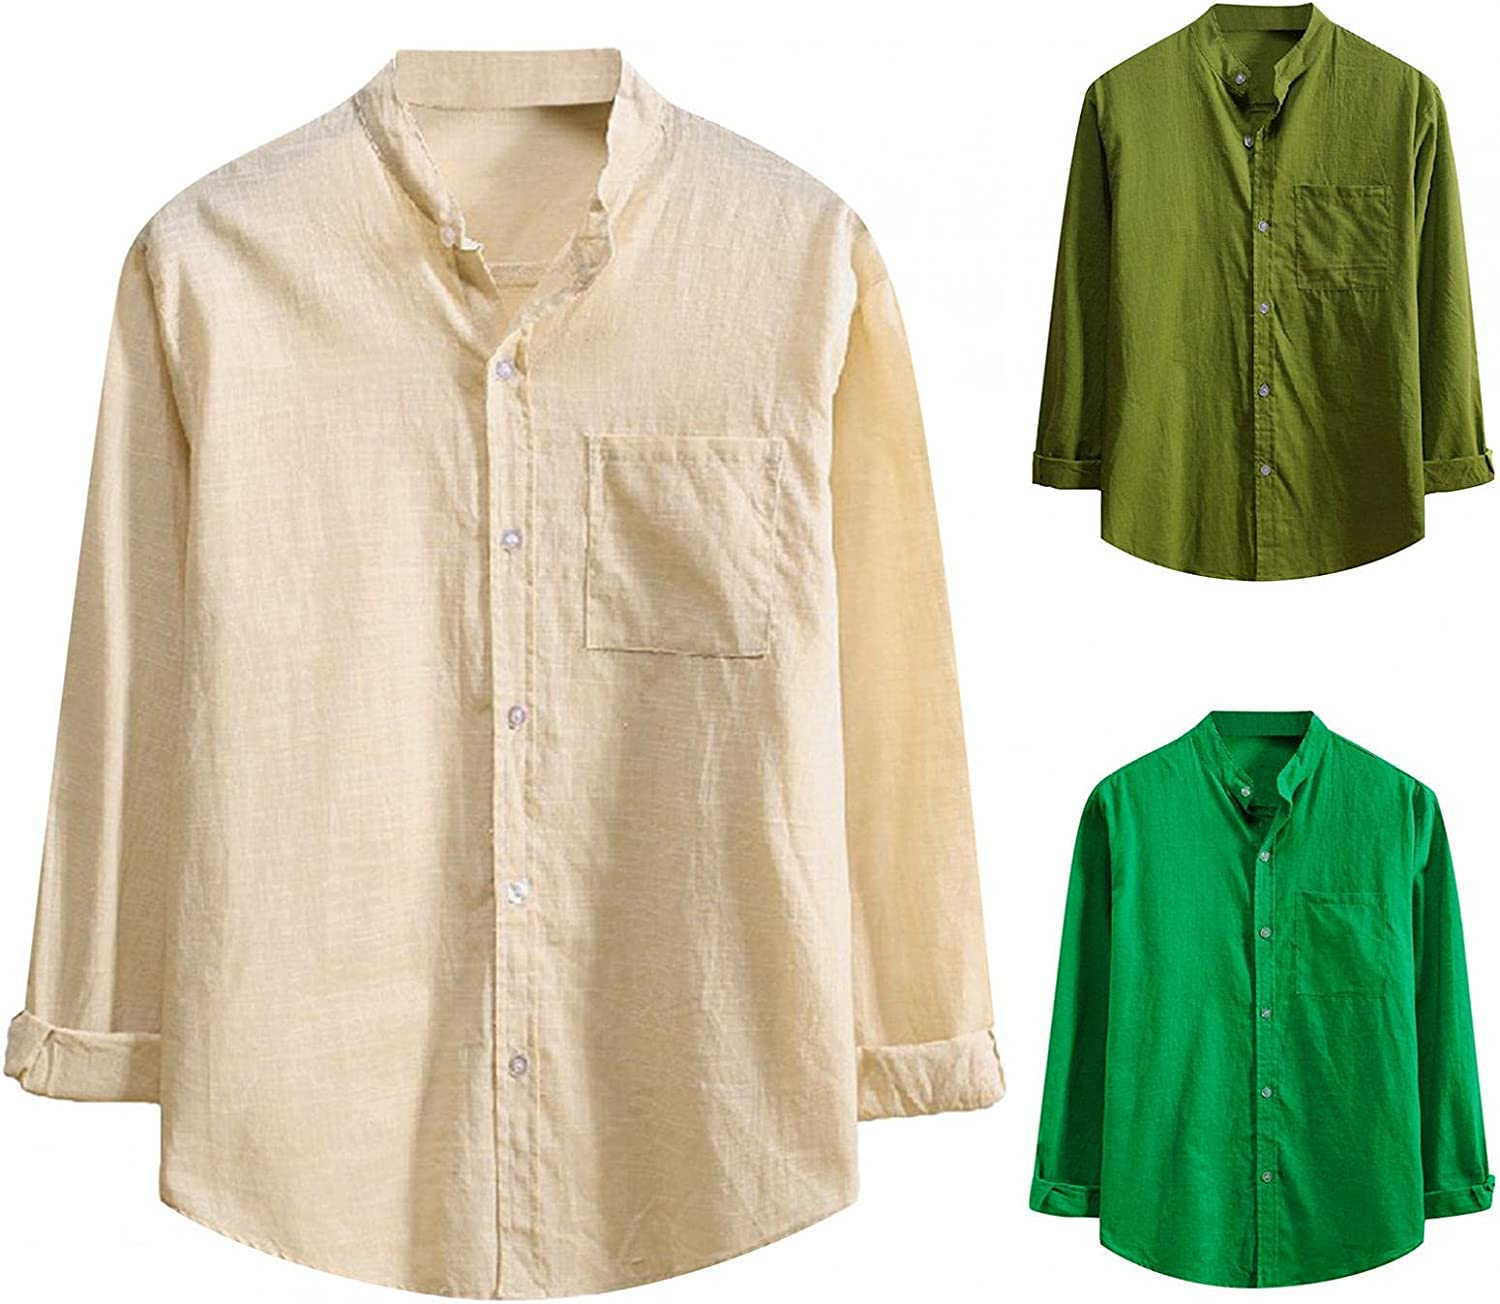 JSPOYOU Button Up Shirt for Men Long Sleeve Slim Fit Dress Shirts Casual Regular Fit Collared Blouse Tops with Pockets